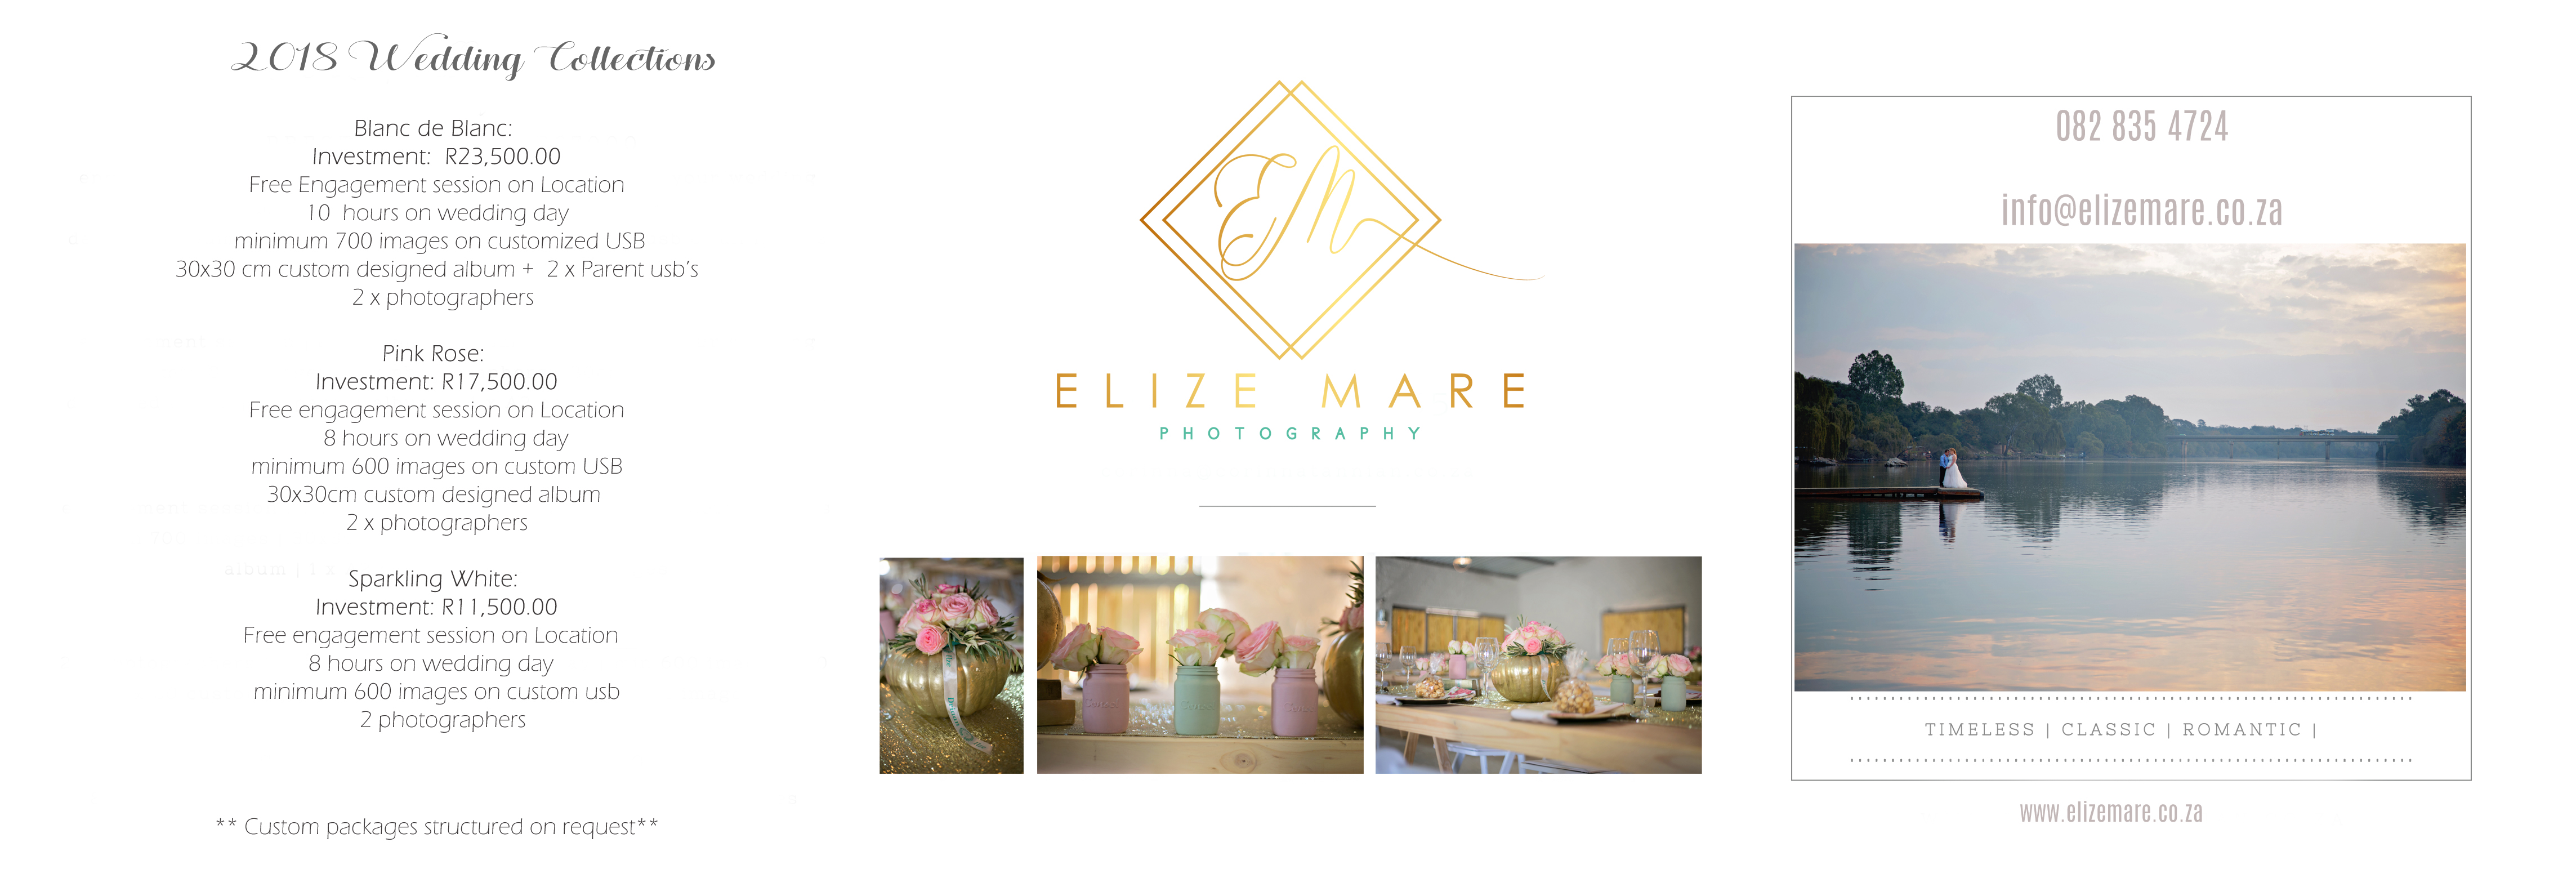 Elize Mare Photography Wedding Pricing for 2018